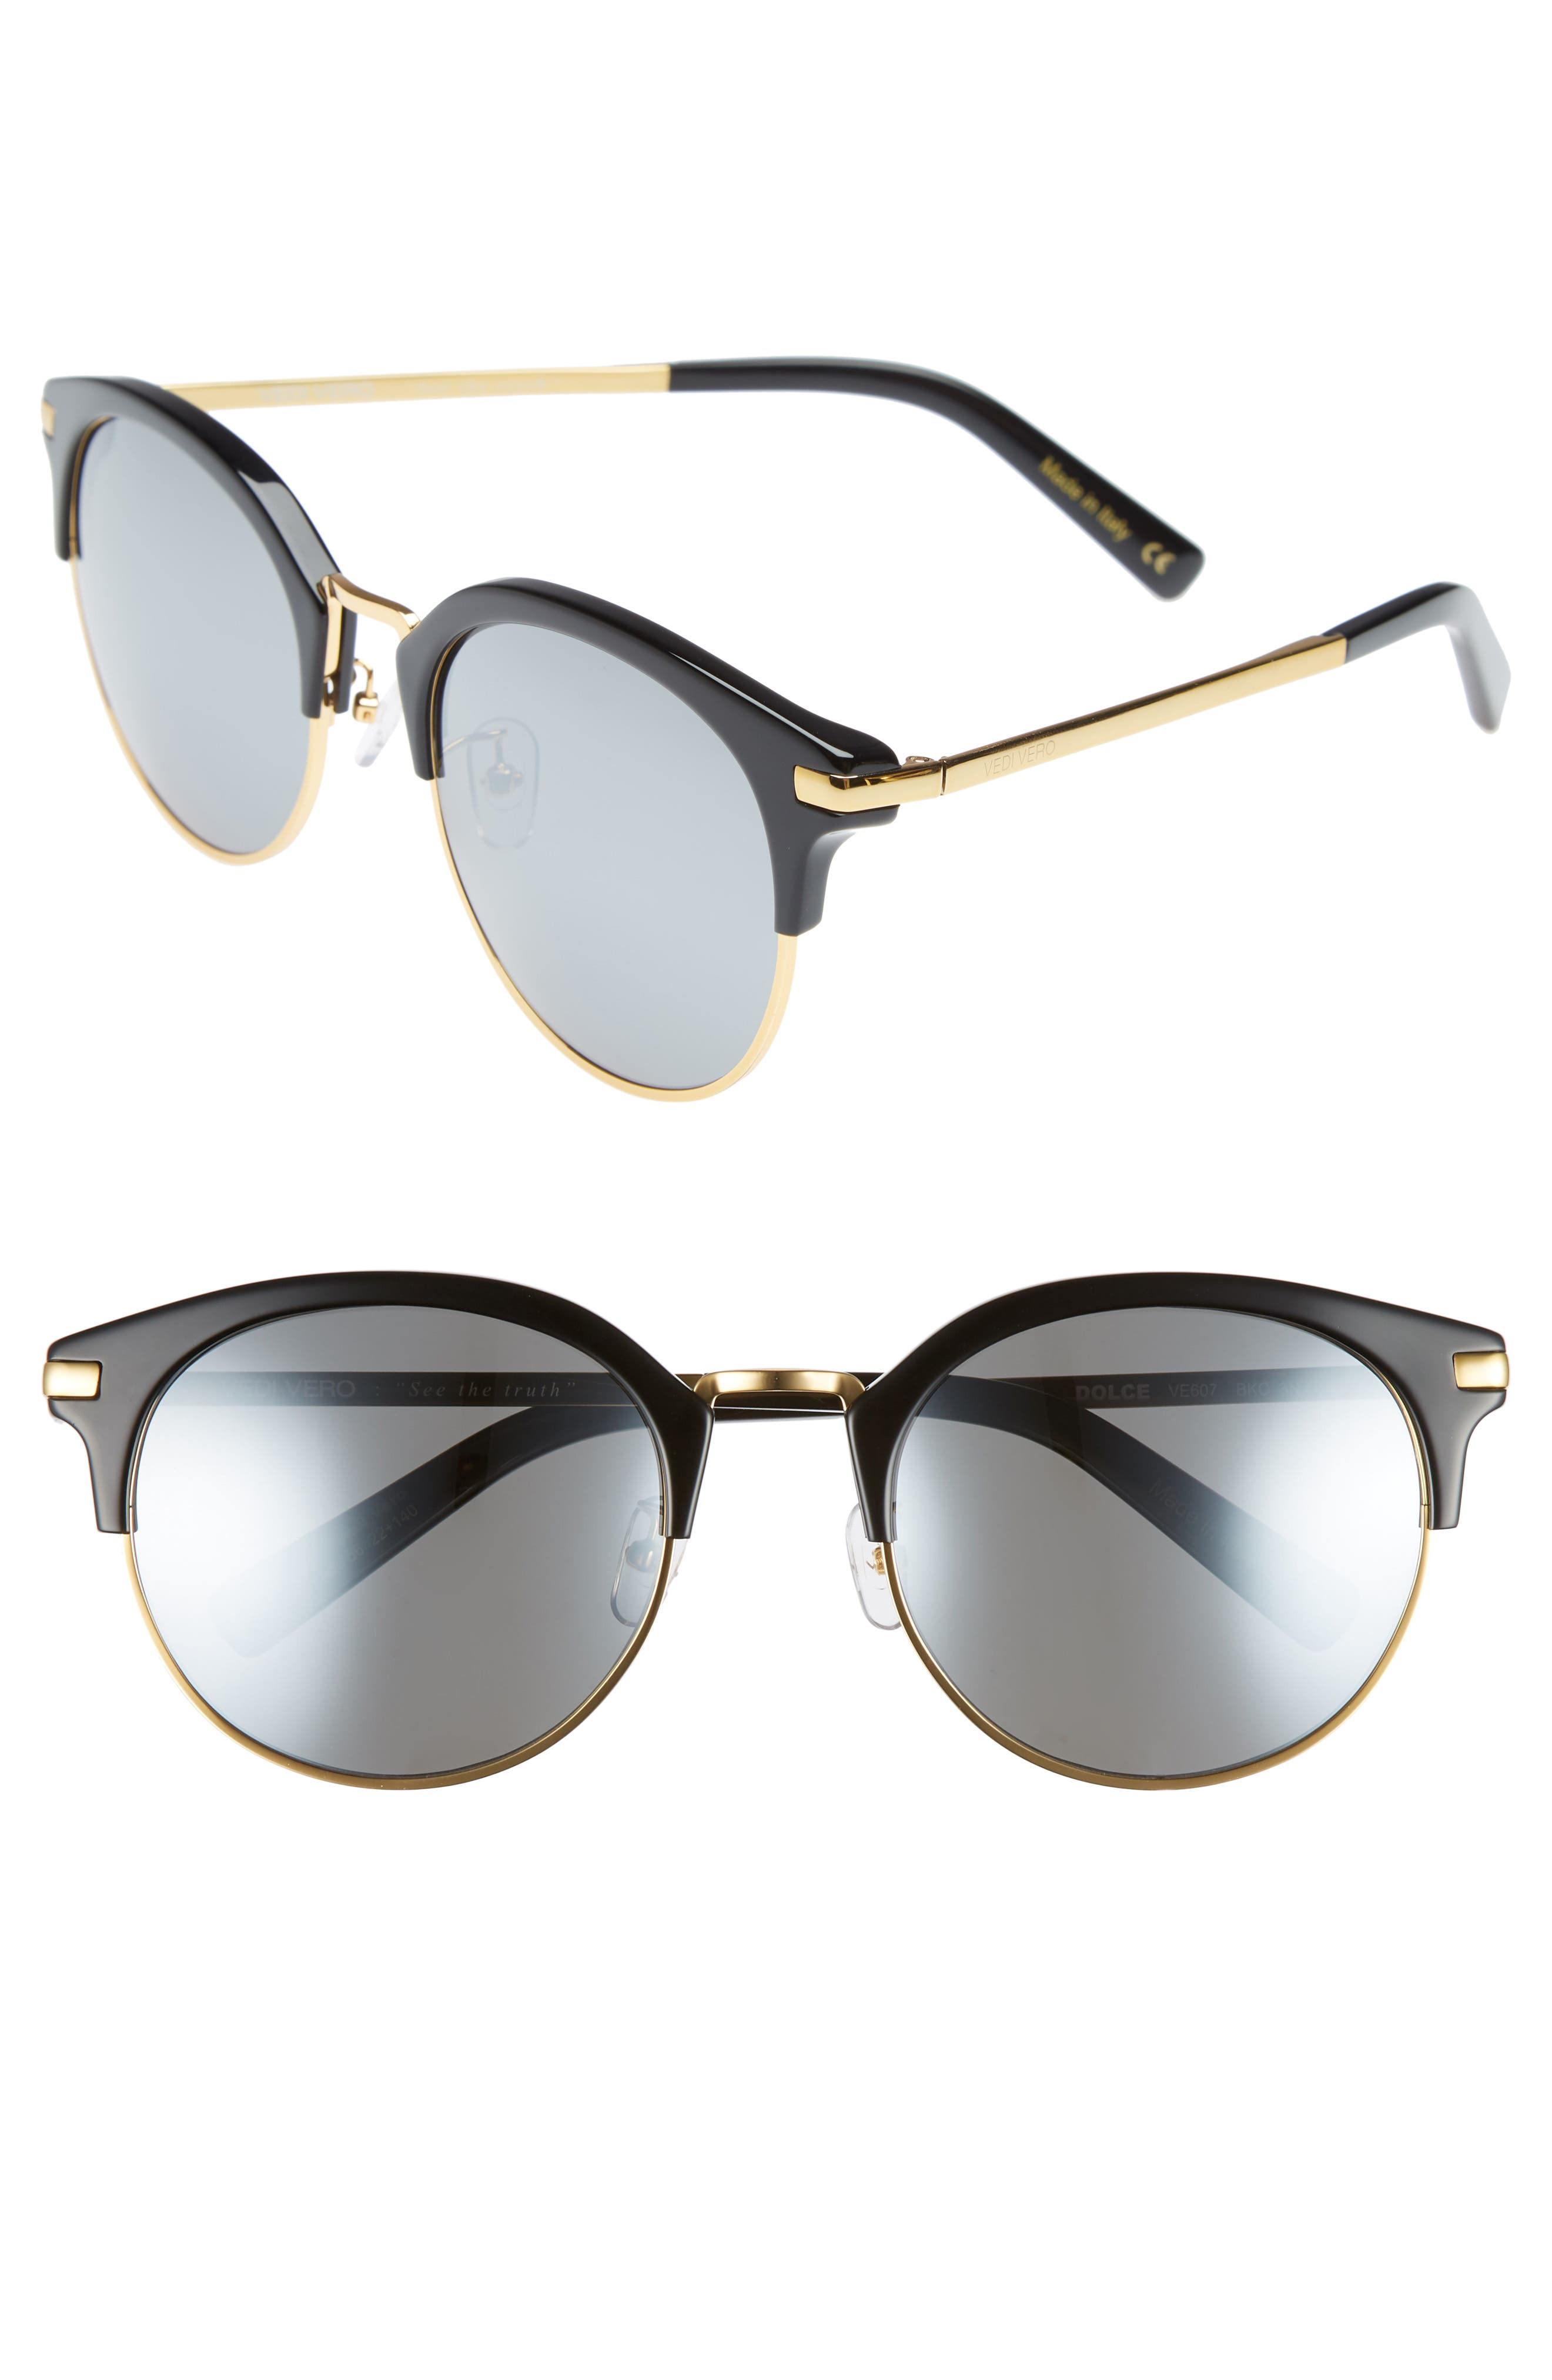 56mm Round Sunglasses,                             Main thumbnail 1, color,                             Gold And Black/Blue Mirror